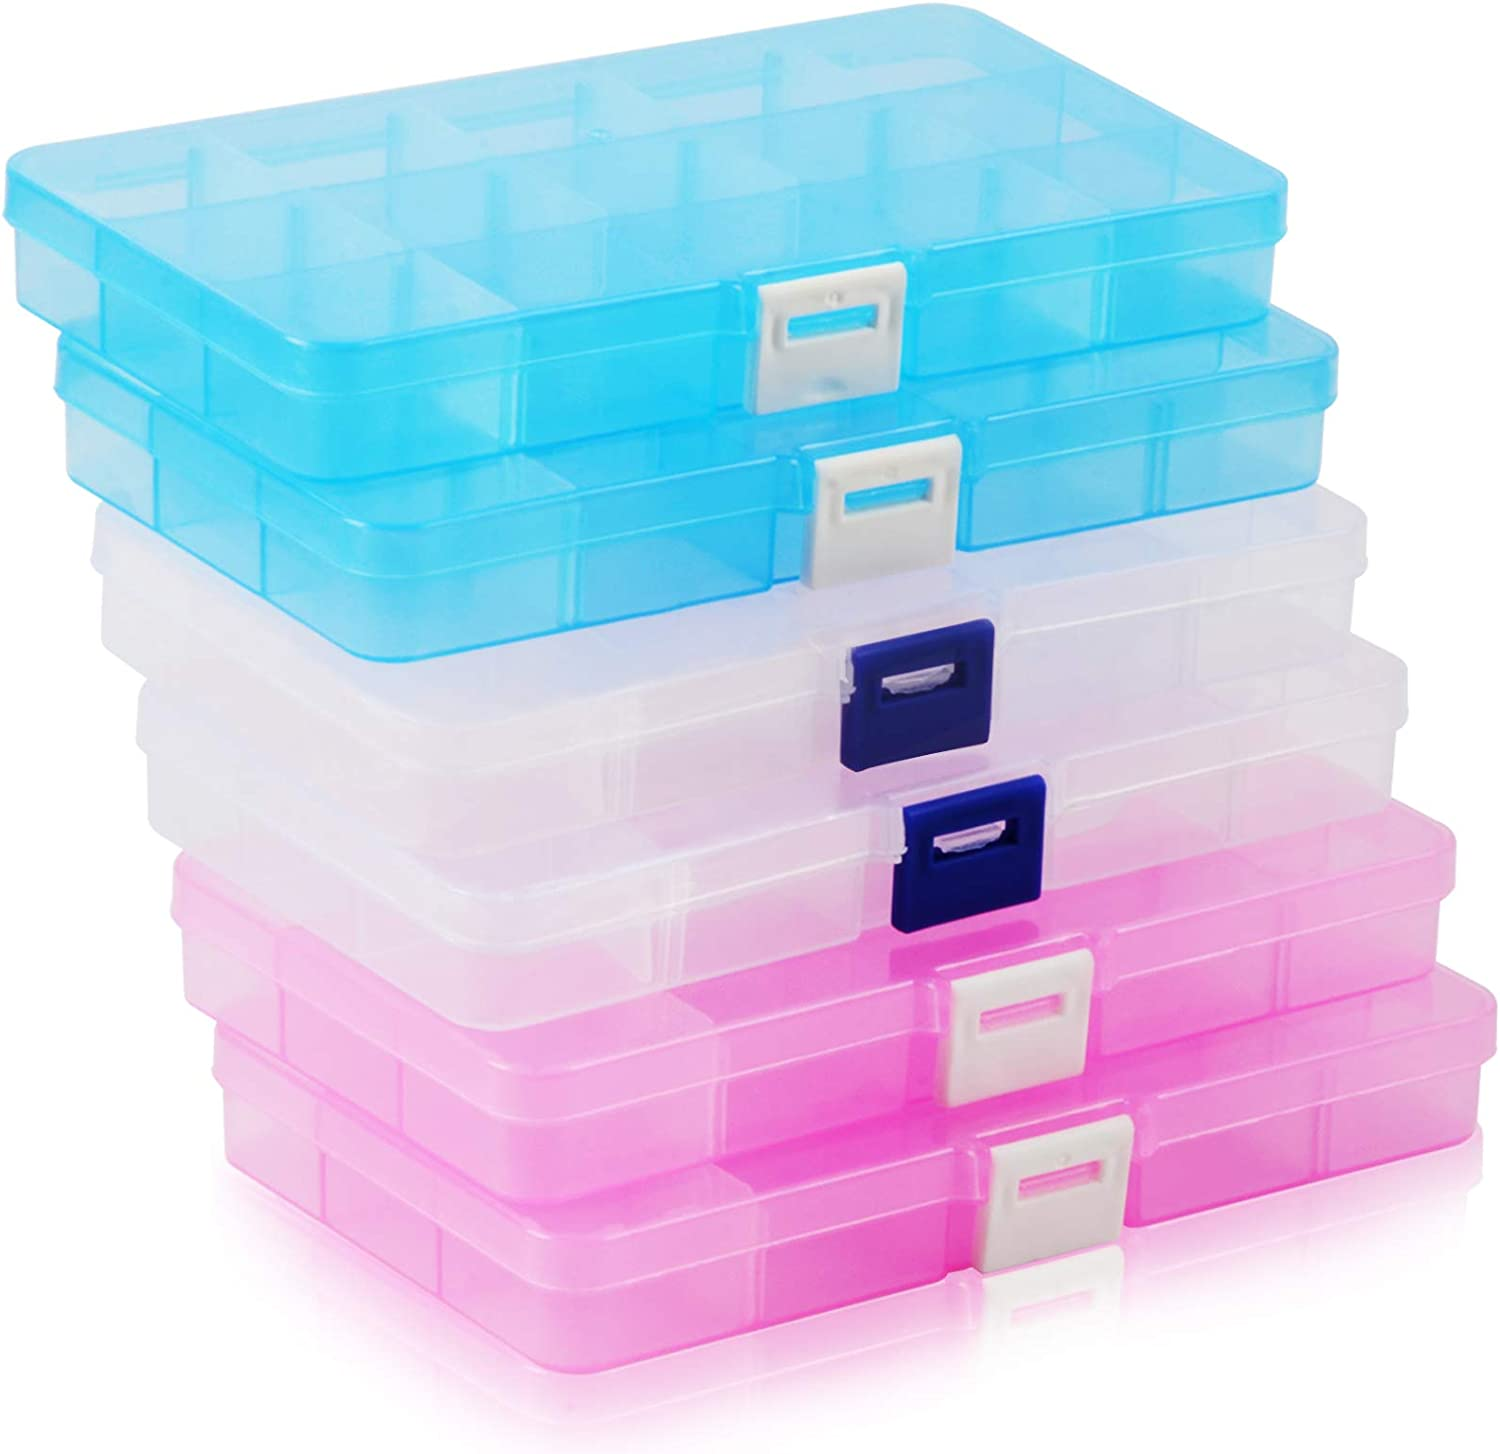 HappyHapi Plastic Jewelry Organizer Box, 6 Pack 15 Little Grids Plastic Bead Storage Container with Removable Dividers for Earring, Art and Crafts, 6.8 x 3.8 x 0.84 Inch